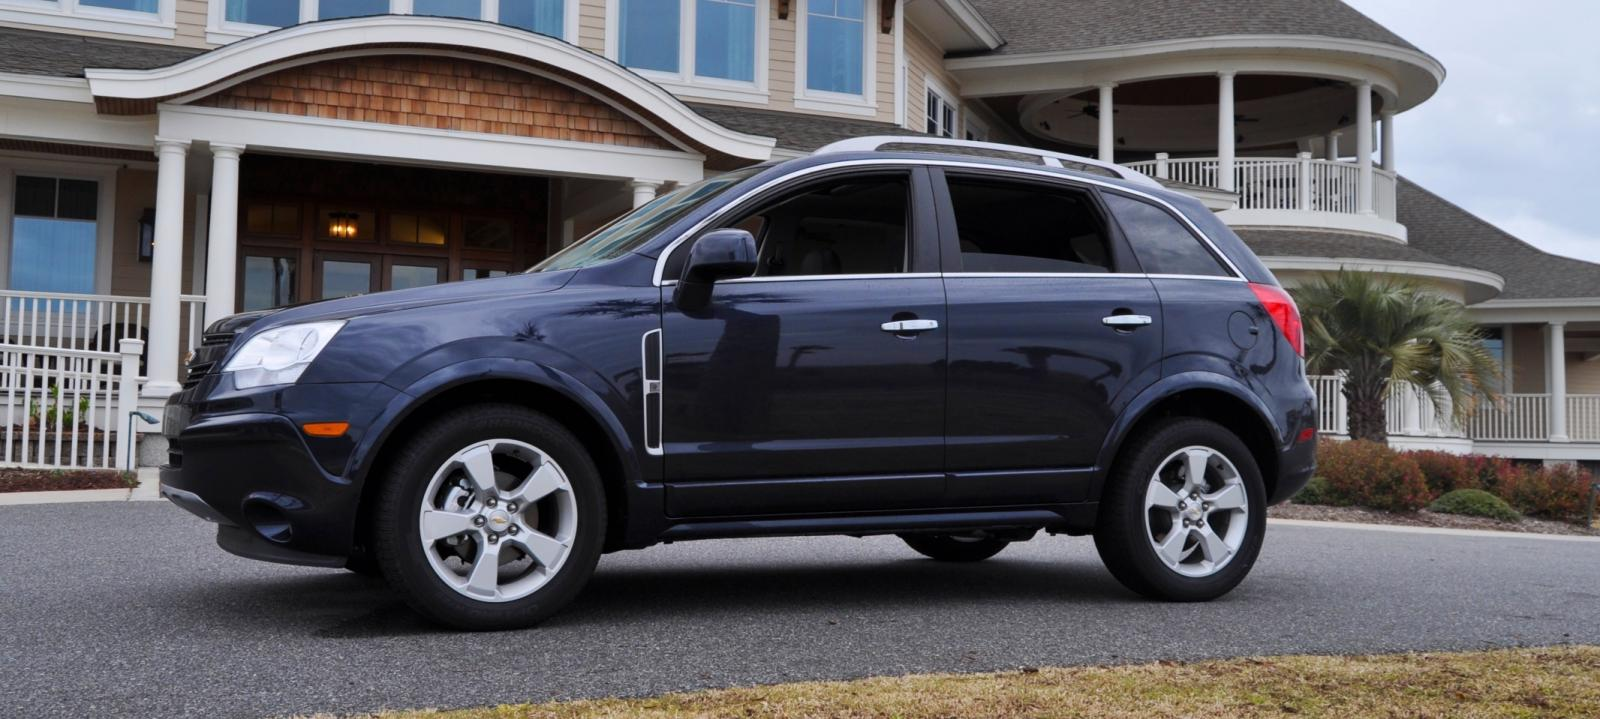 2014 chevrolet captiva sport information and photos zombiedrive. Cars Review. Best American Auto & Cars Review